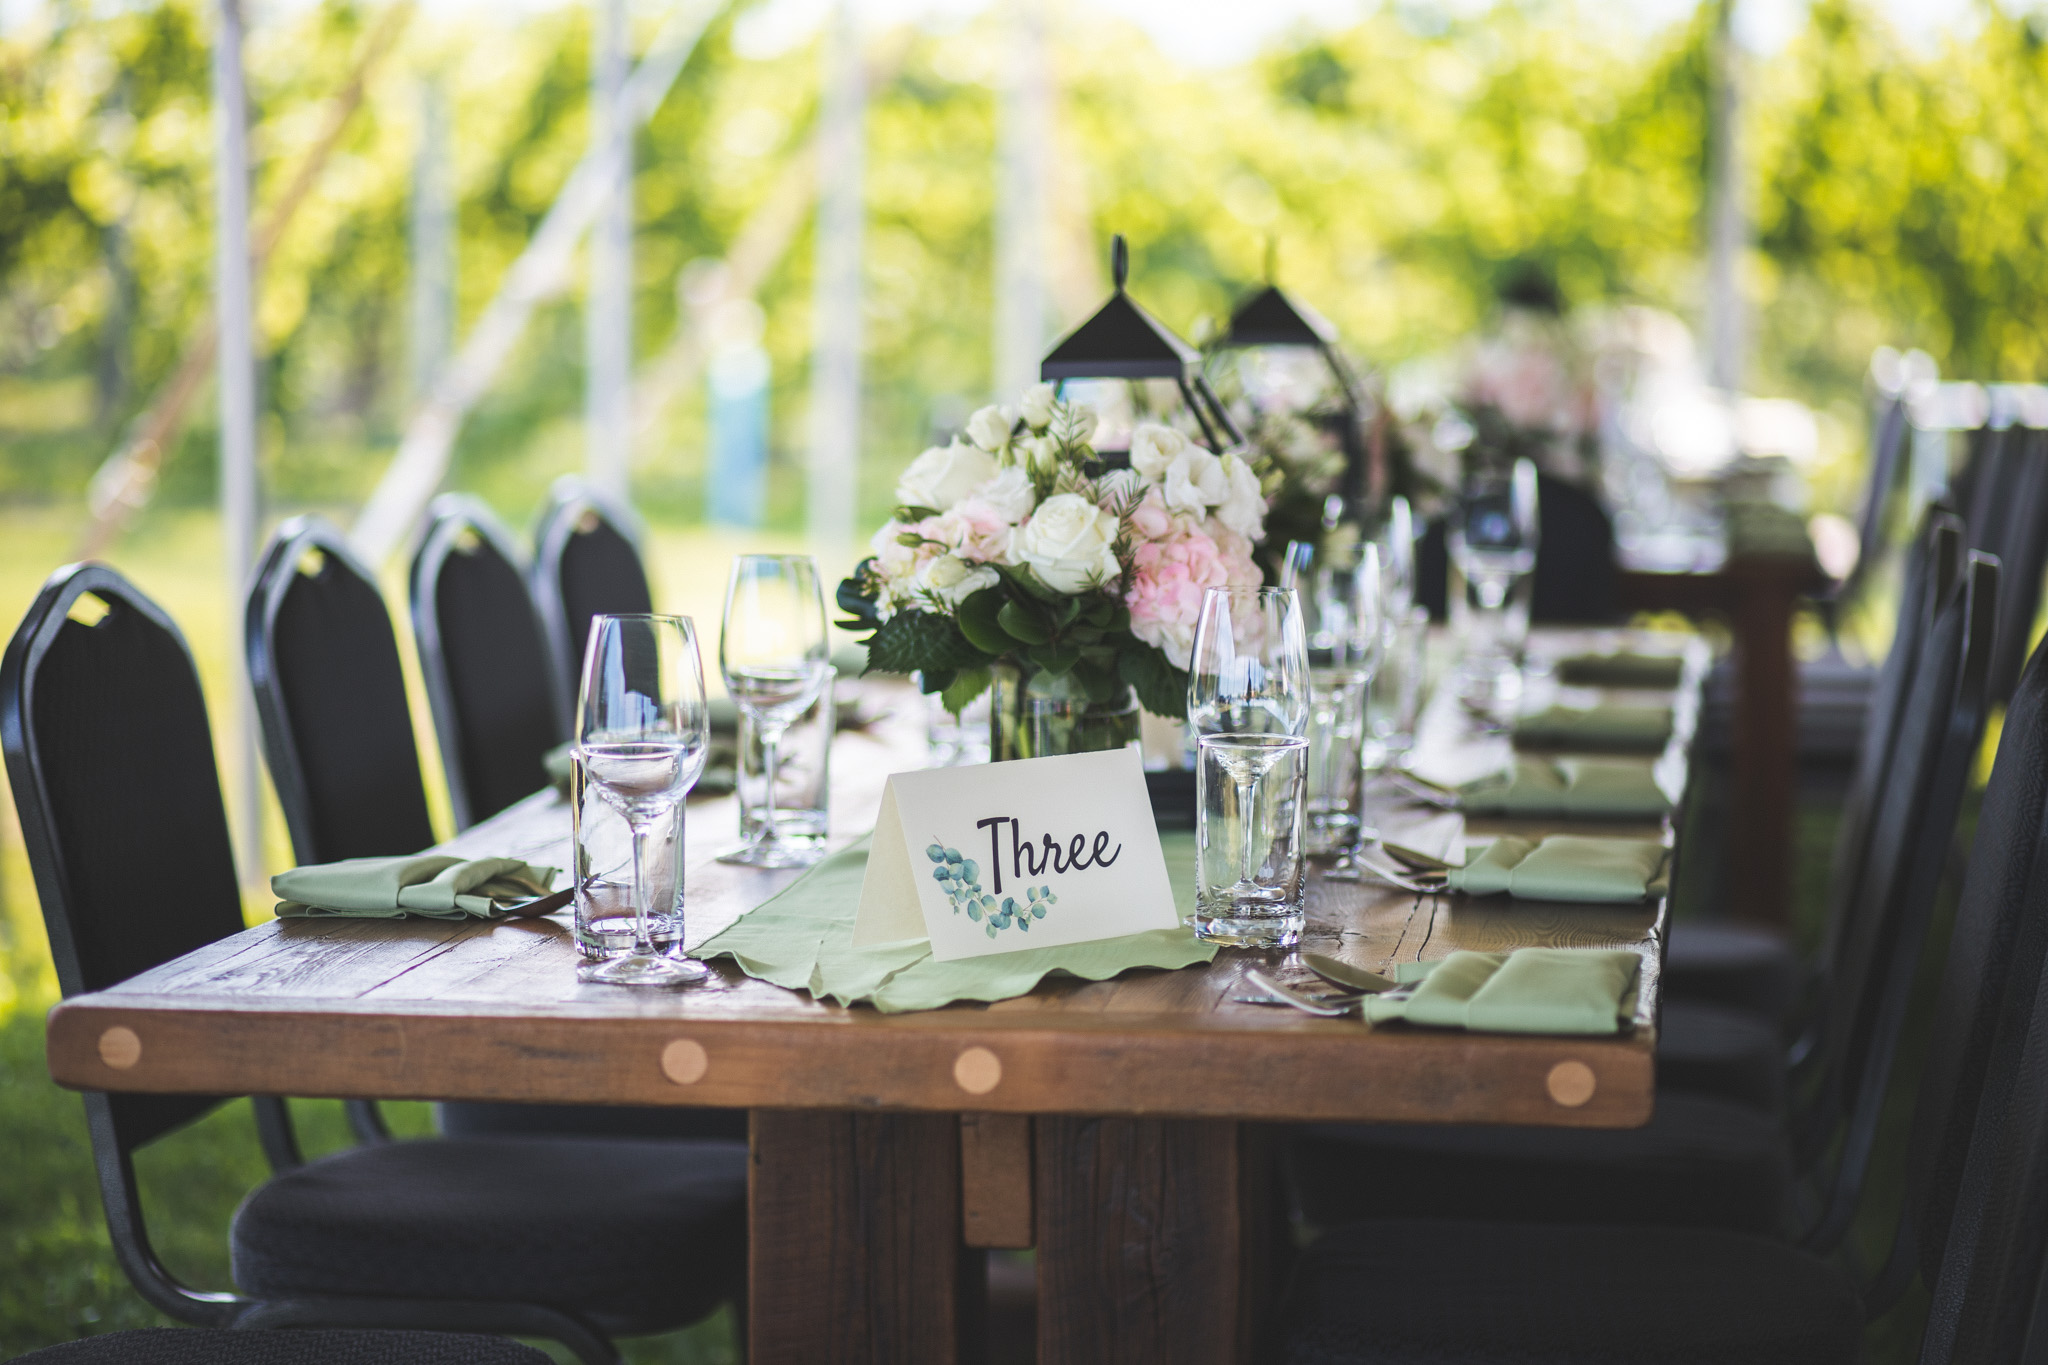 Private Event Table